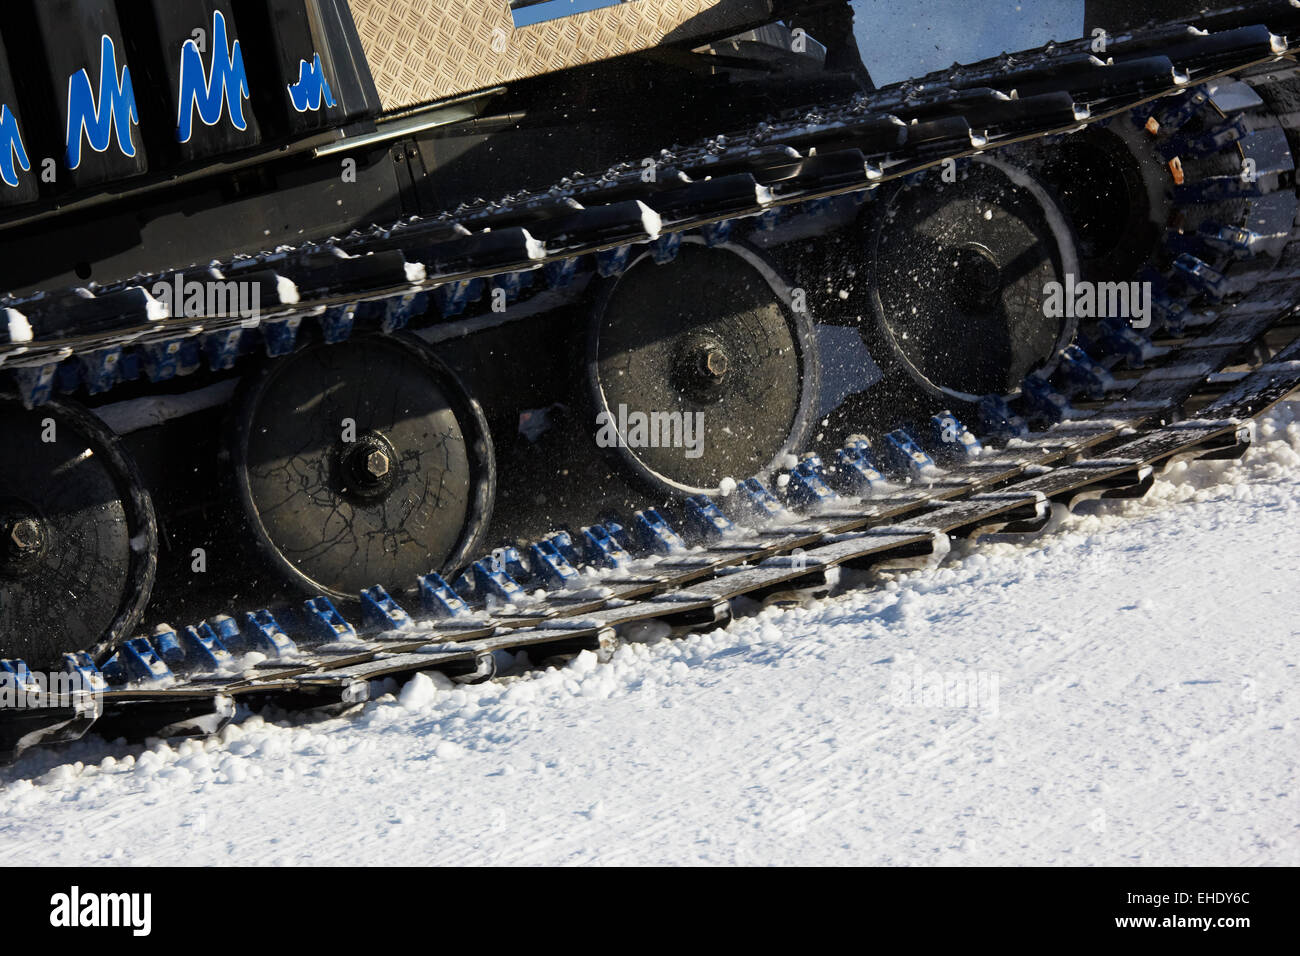 Working Piste machine (snow cat) detail - Stock Image